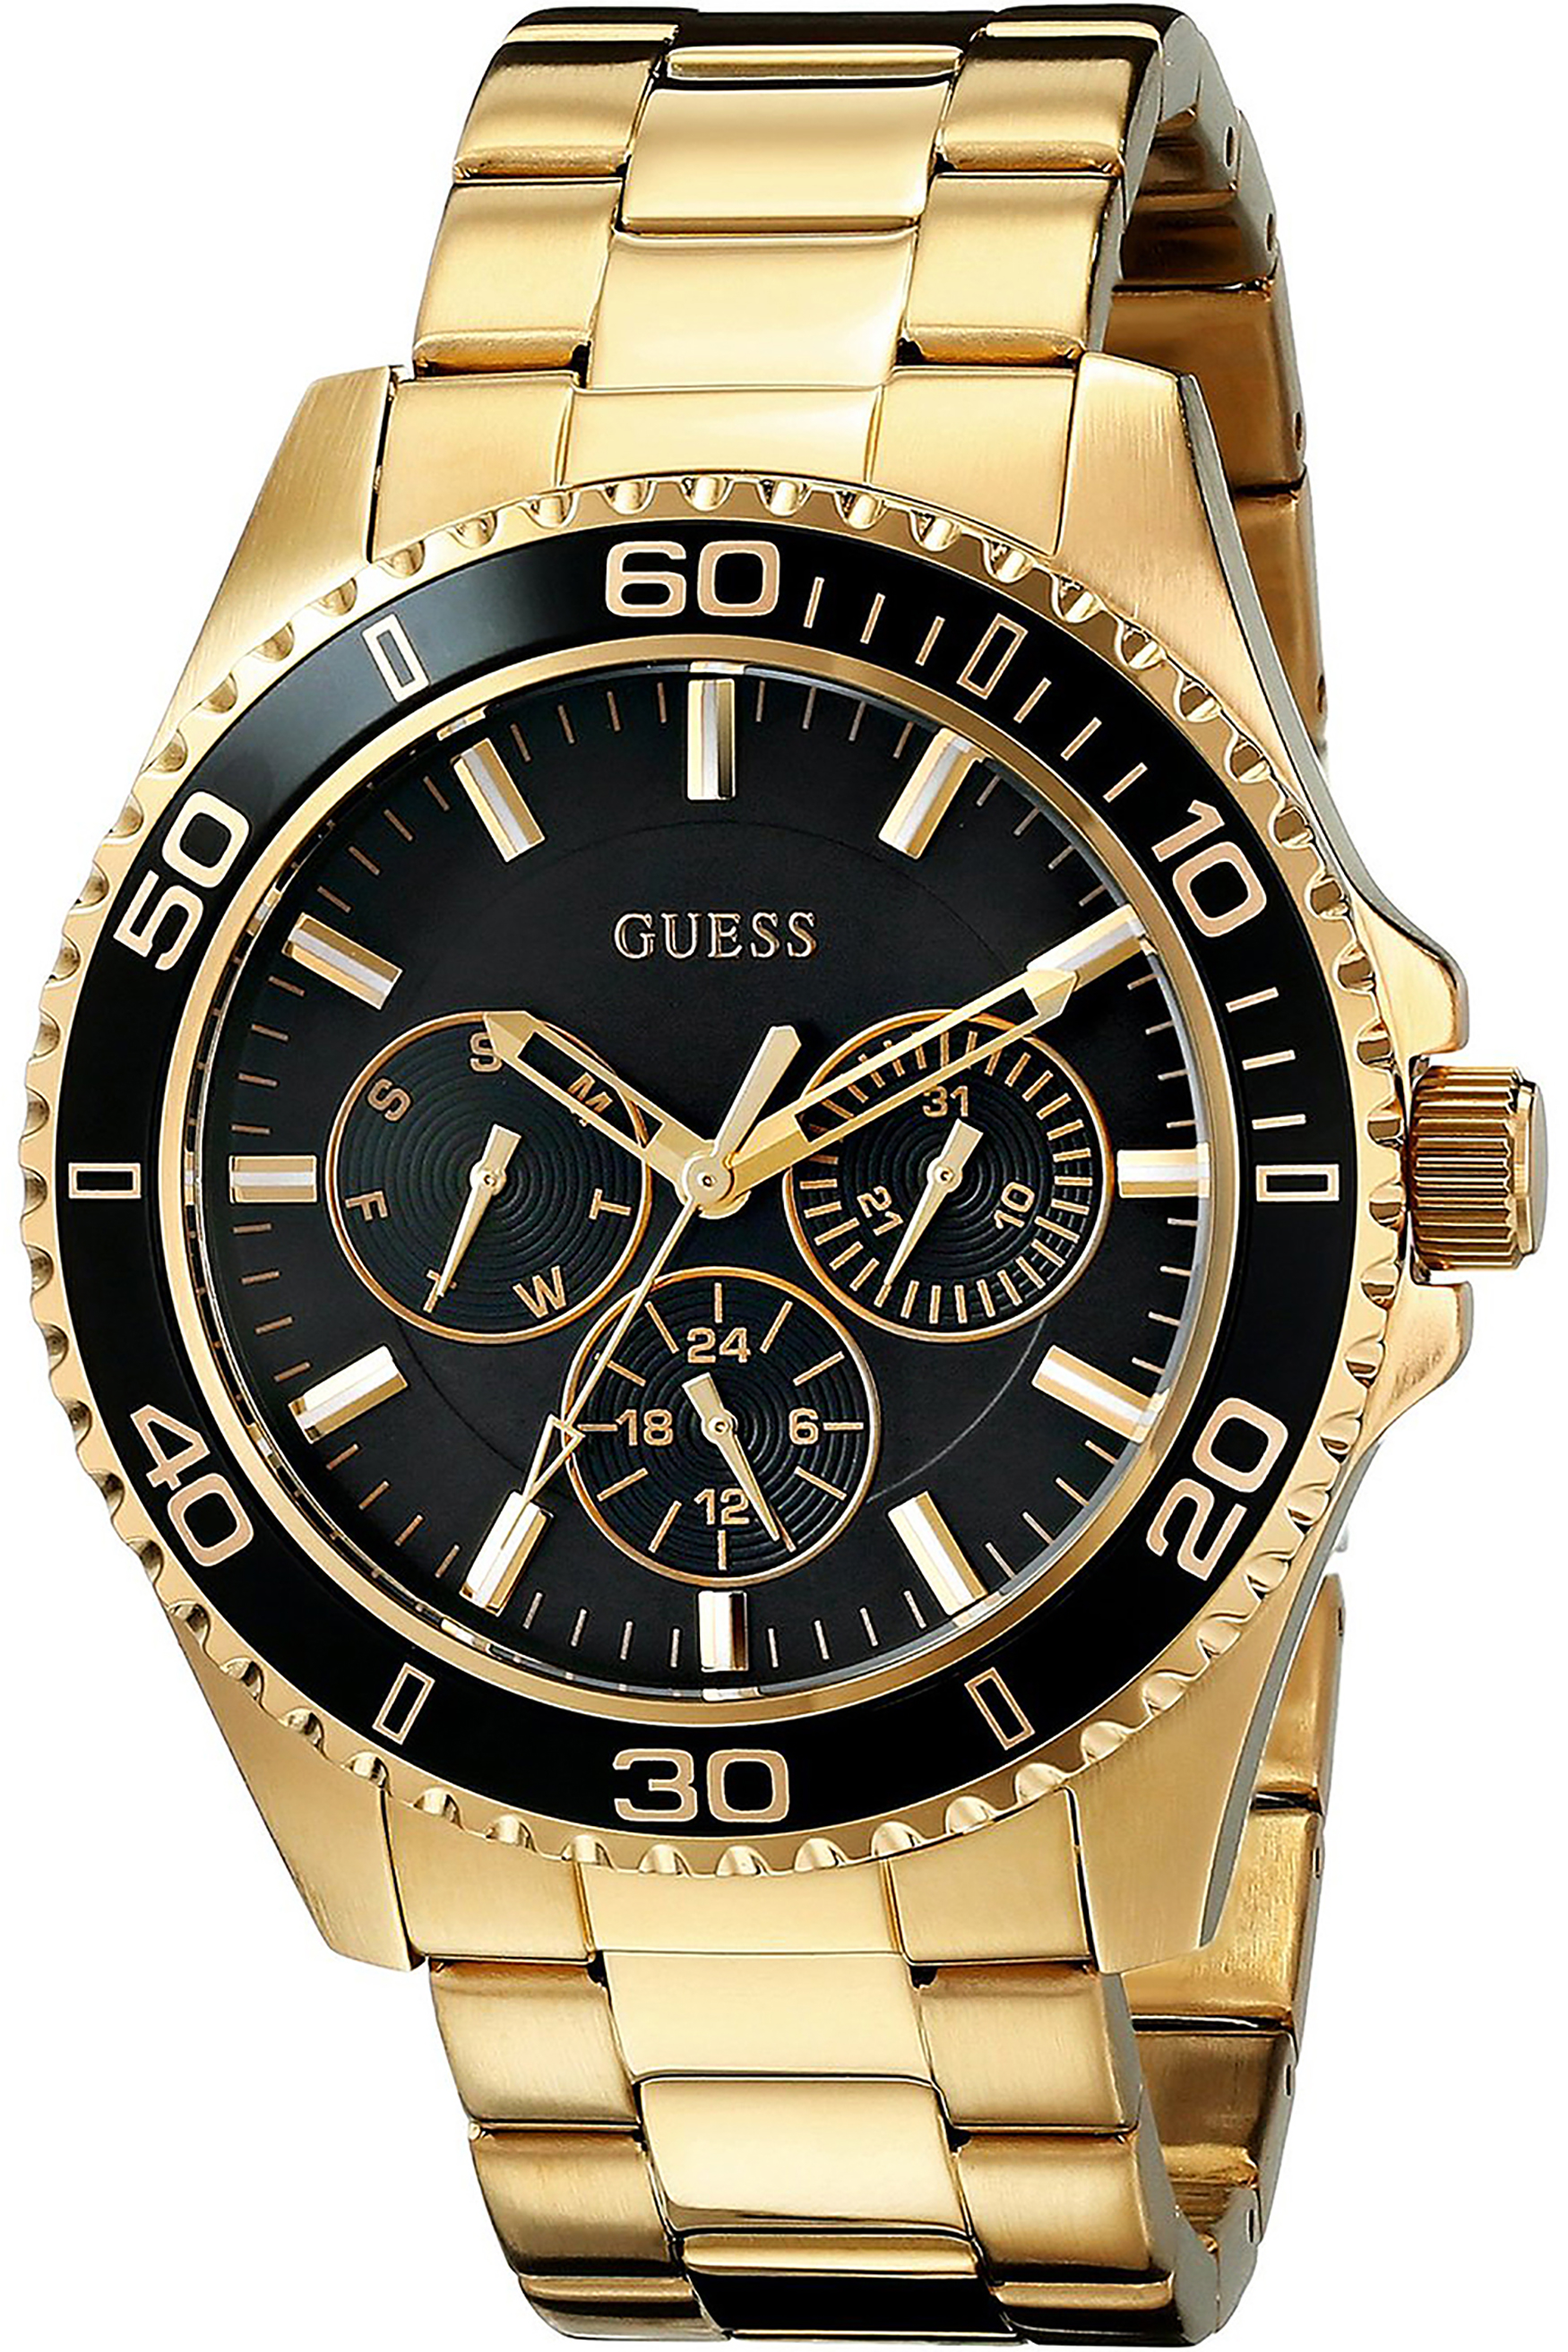 W0231L3,Ladies's Sporty,Stainless Steel case and bracelet,Gold-Tone,Multi-Function,50m WR